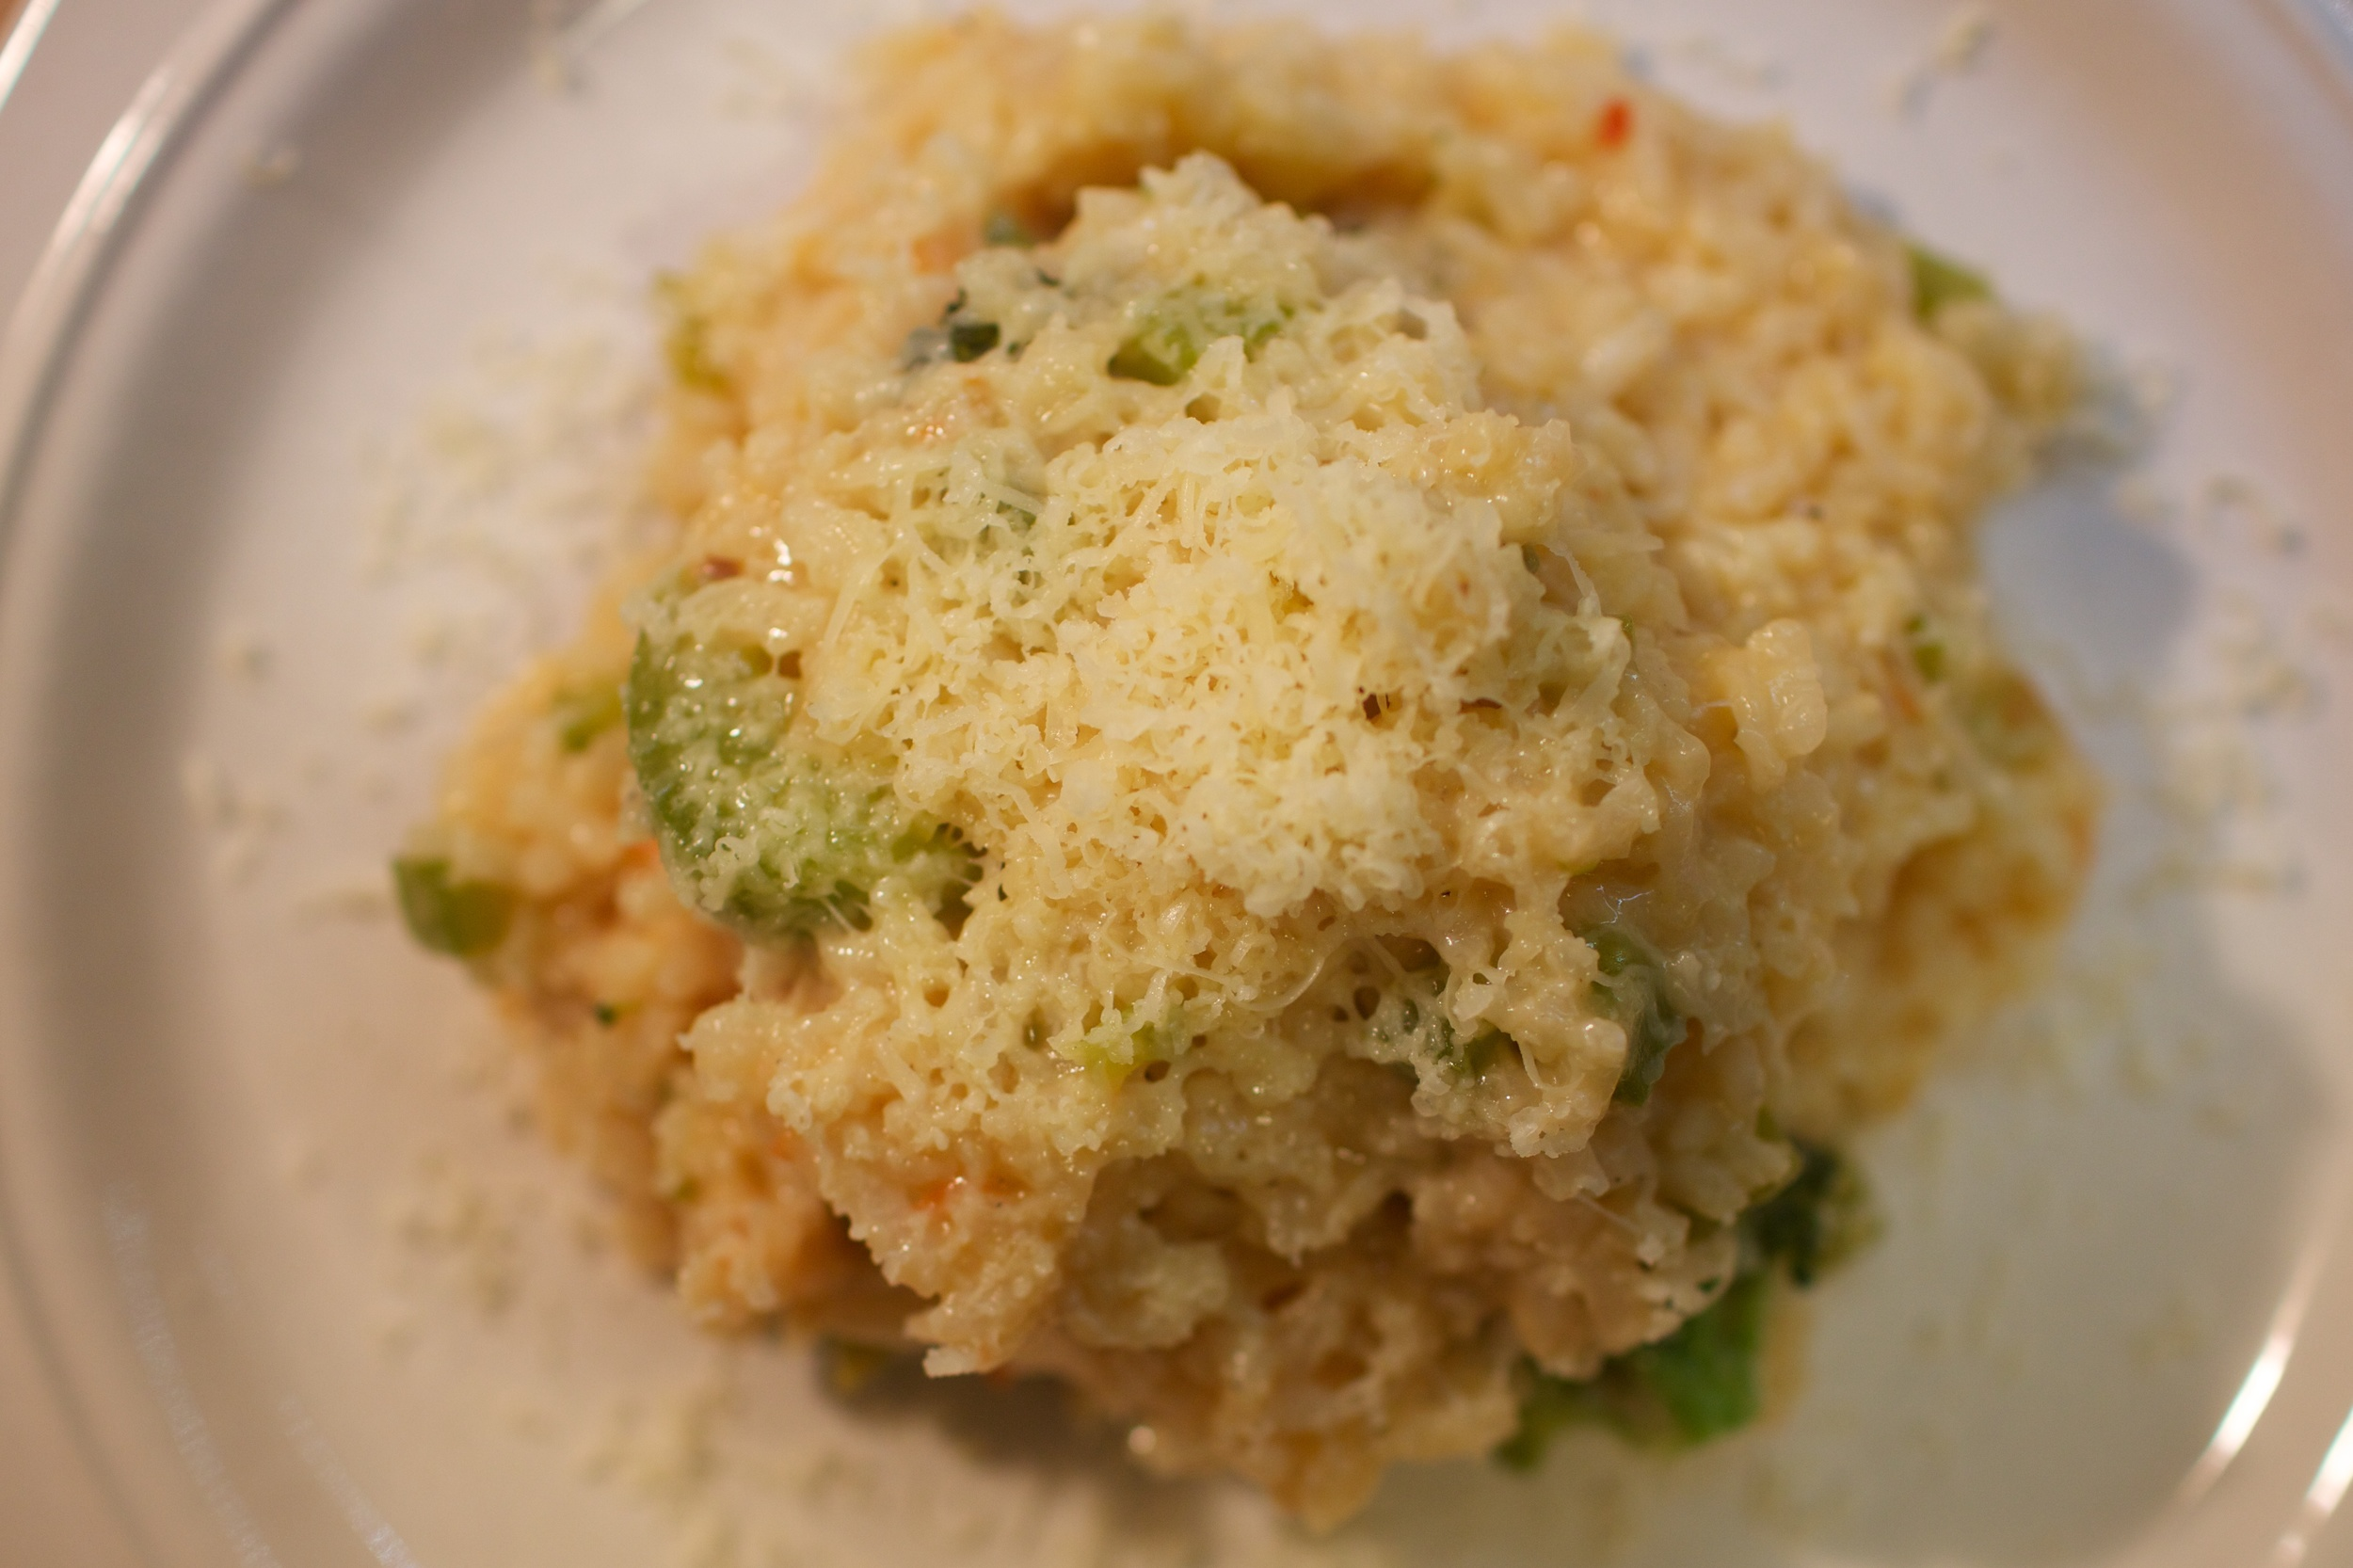 Adding some freshly grated parmesan cheese on top